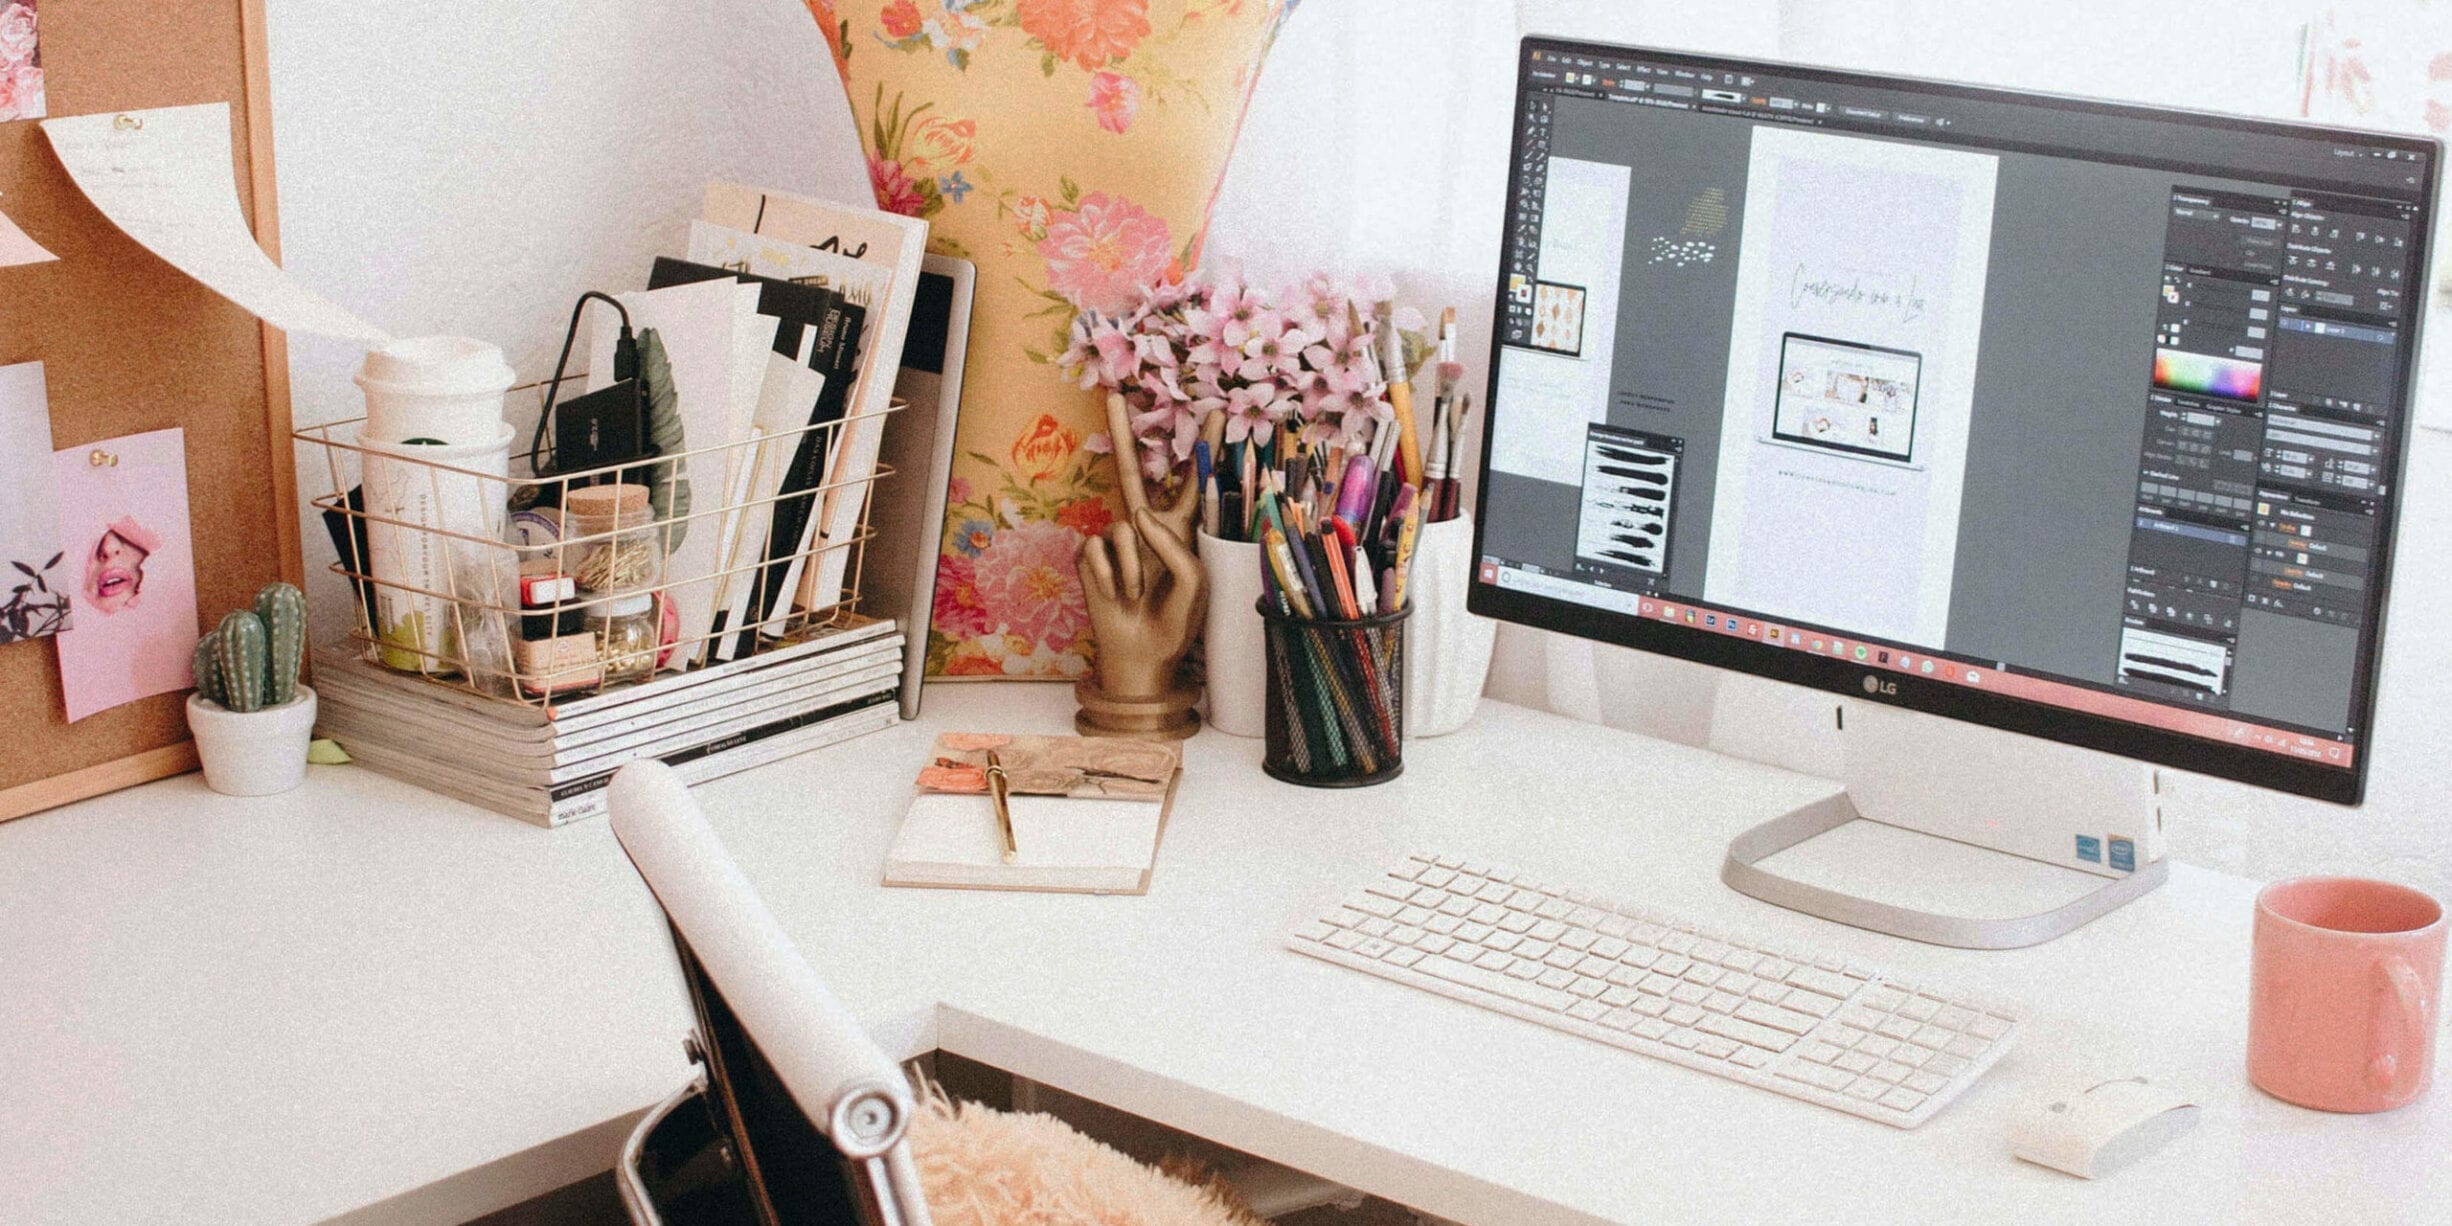 computer on a desk with pink mug, chair, pens and pencils in a container, flowers, basket, corkboard